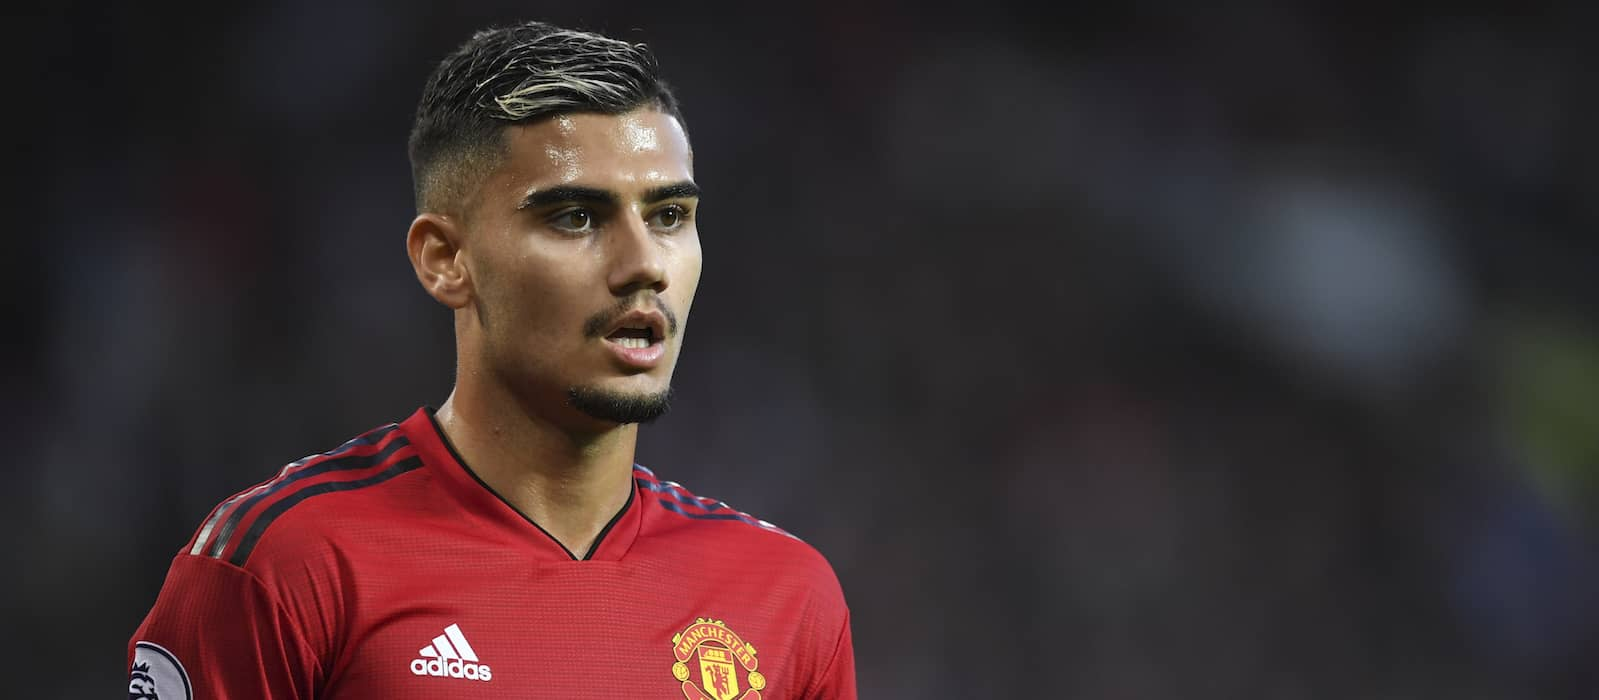 Andreas Pereira: I am going to try my best to keep playing